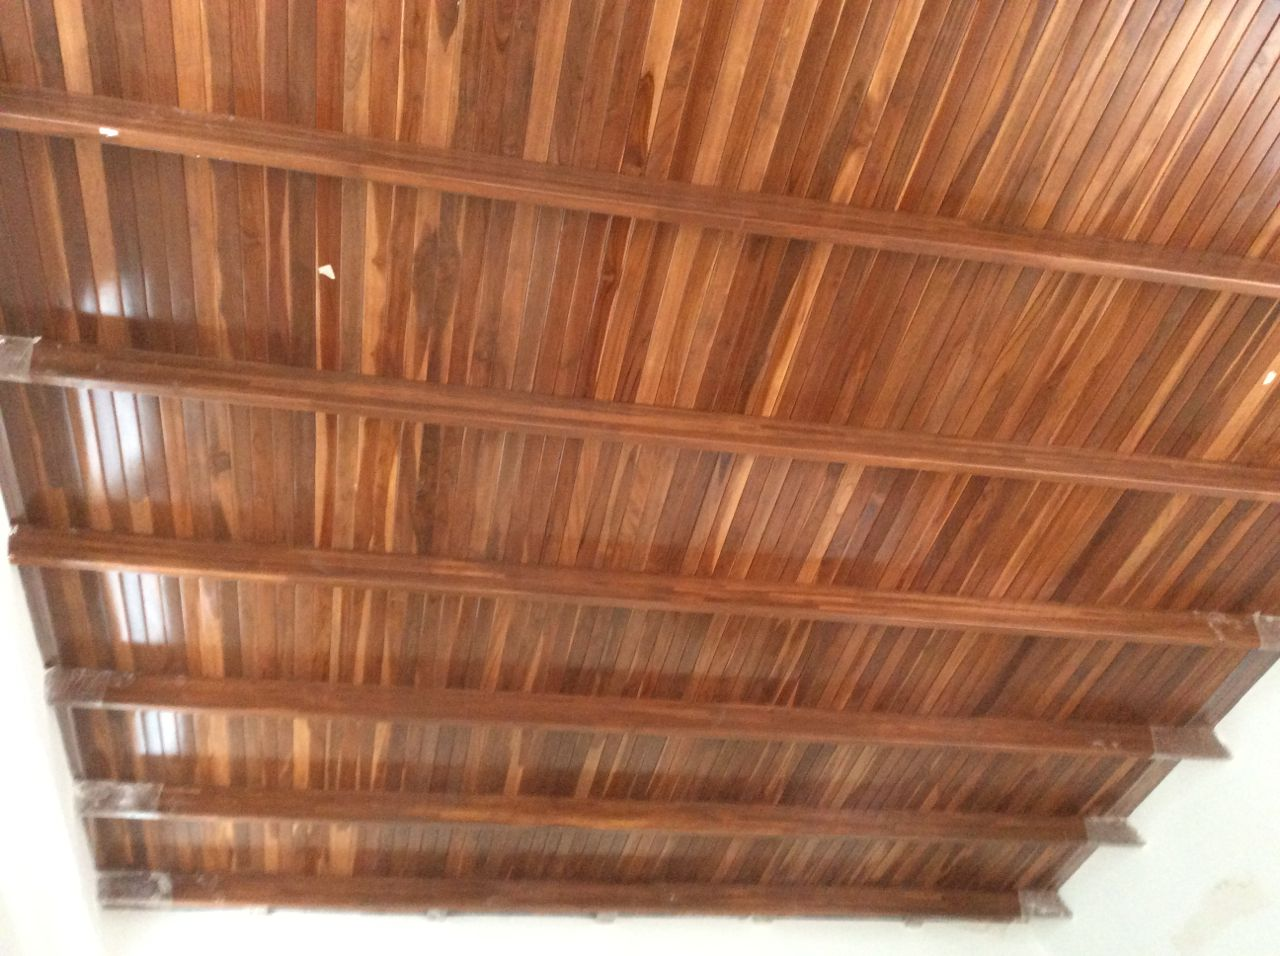 Living room ceiling complete